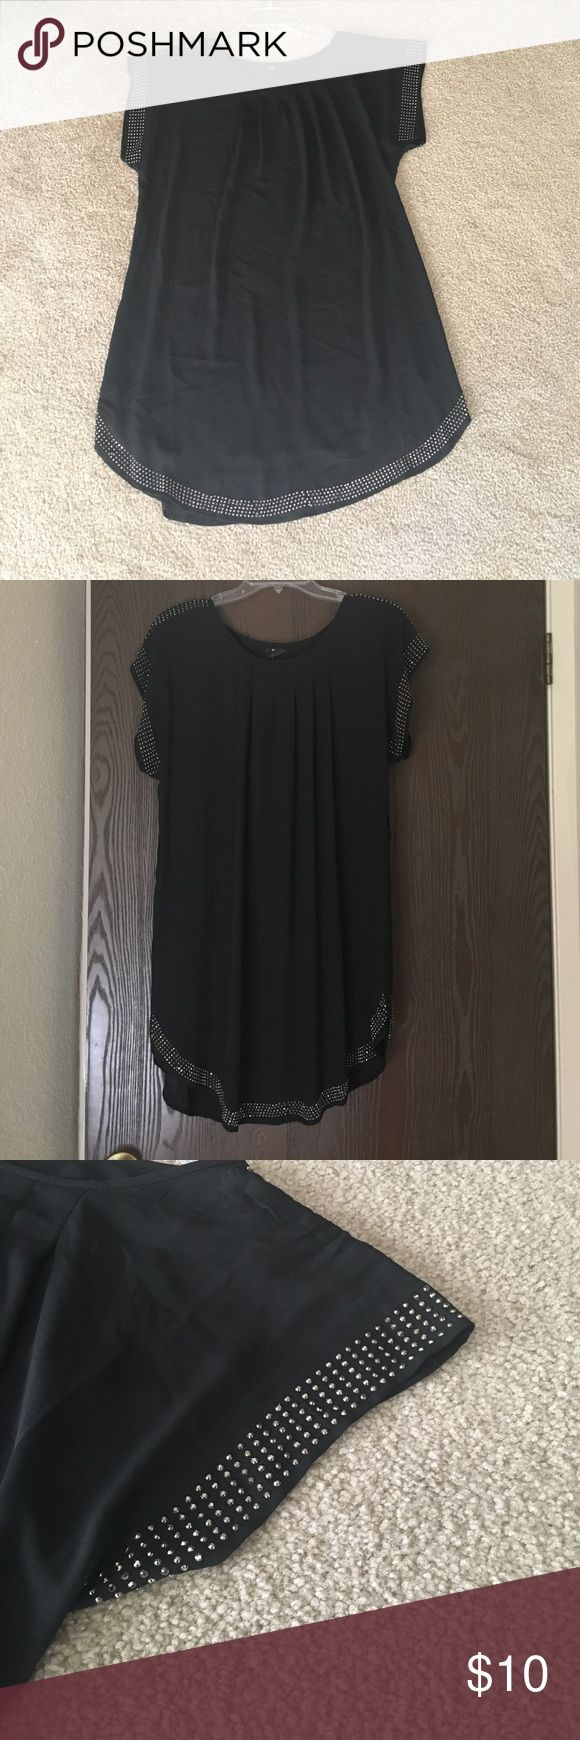 Black shift dress Brand new with tags!! Black shift dress with silver beaded accents around arms and bottom of the dress. Perfect for a date night! Dresses Midi